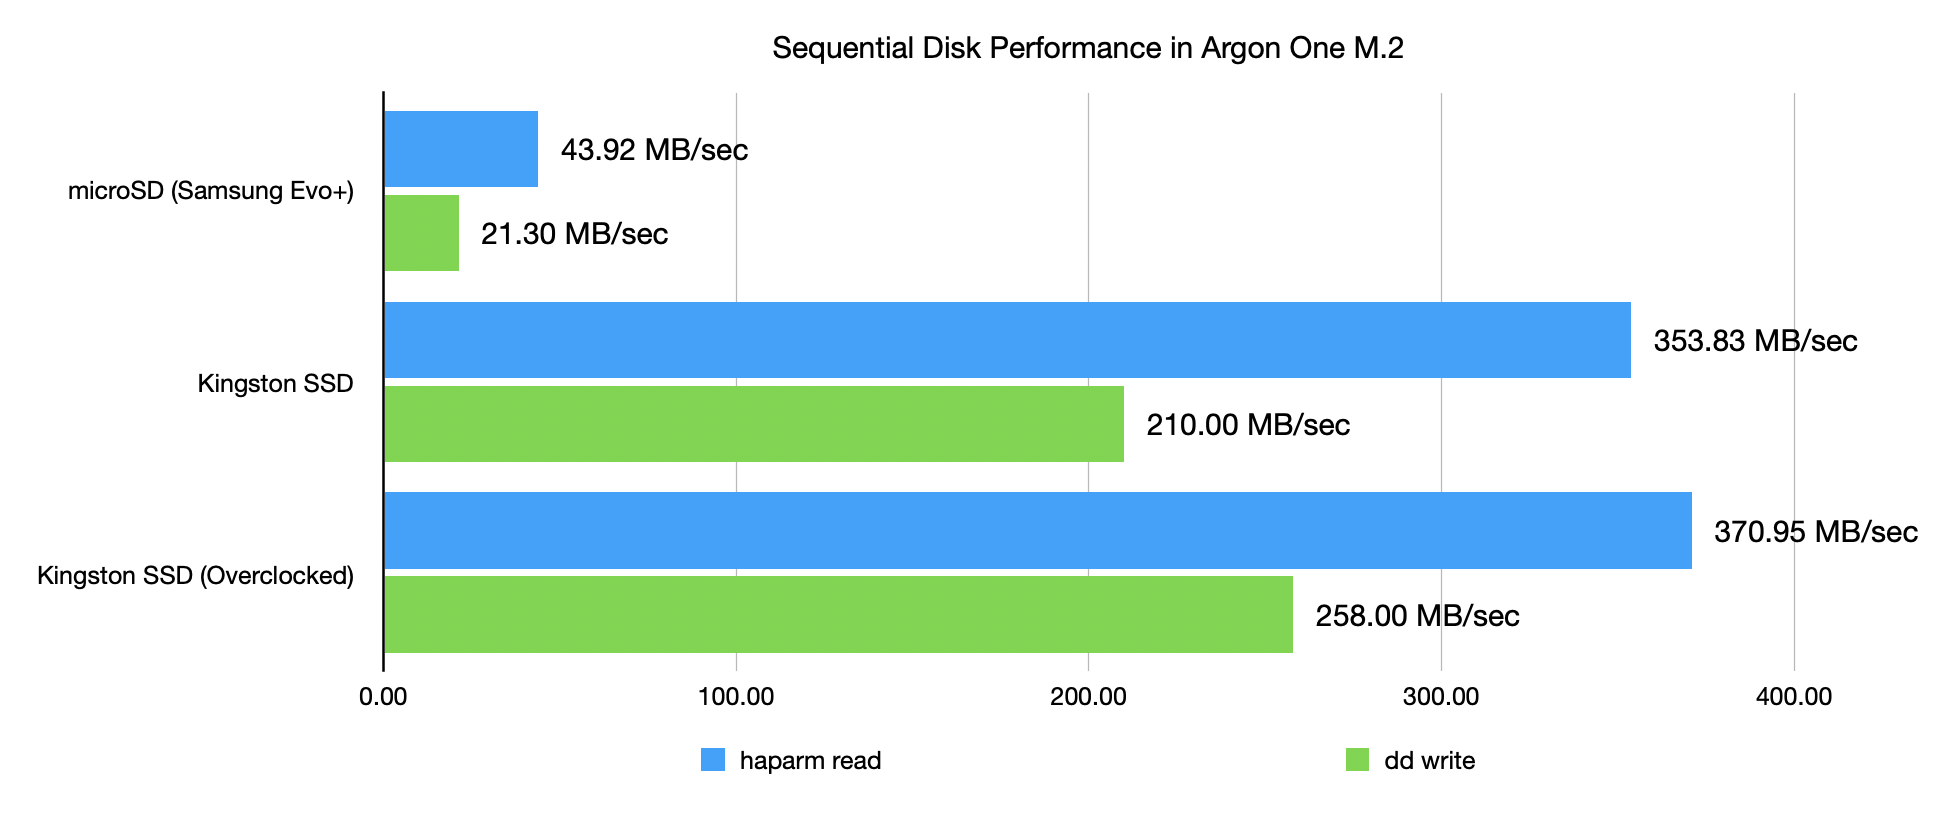 Argon One M.2 SSD vs microSD performance - sequential